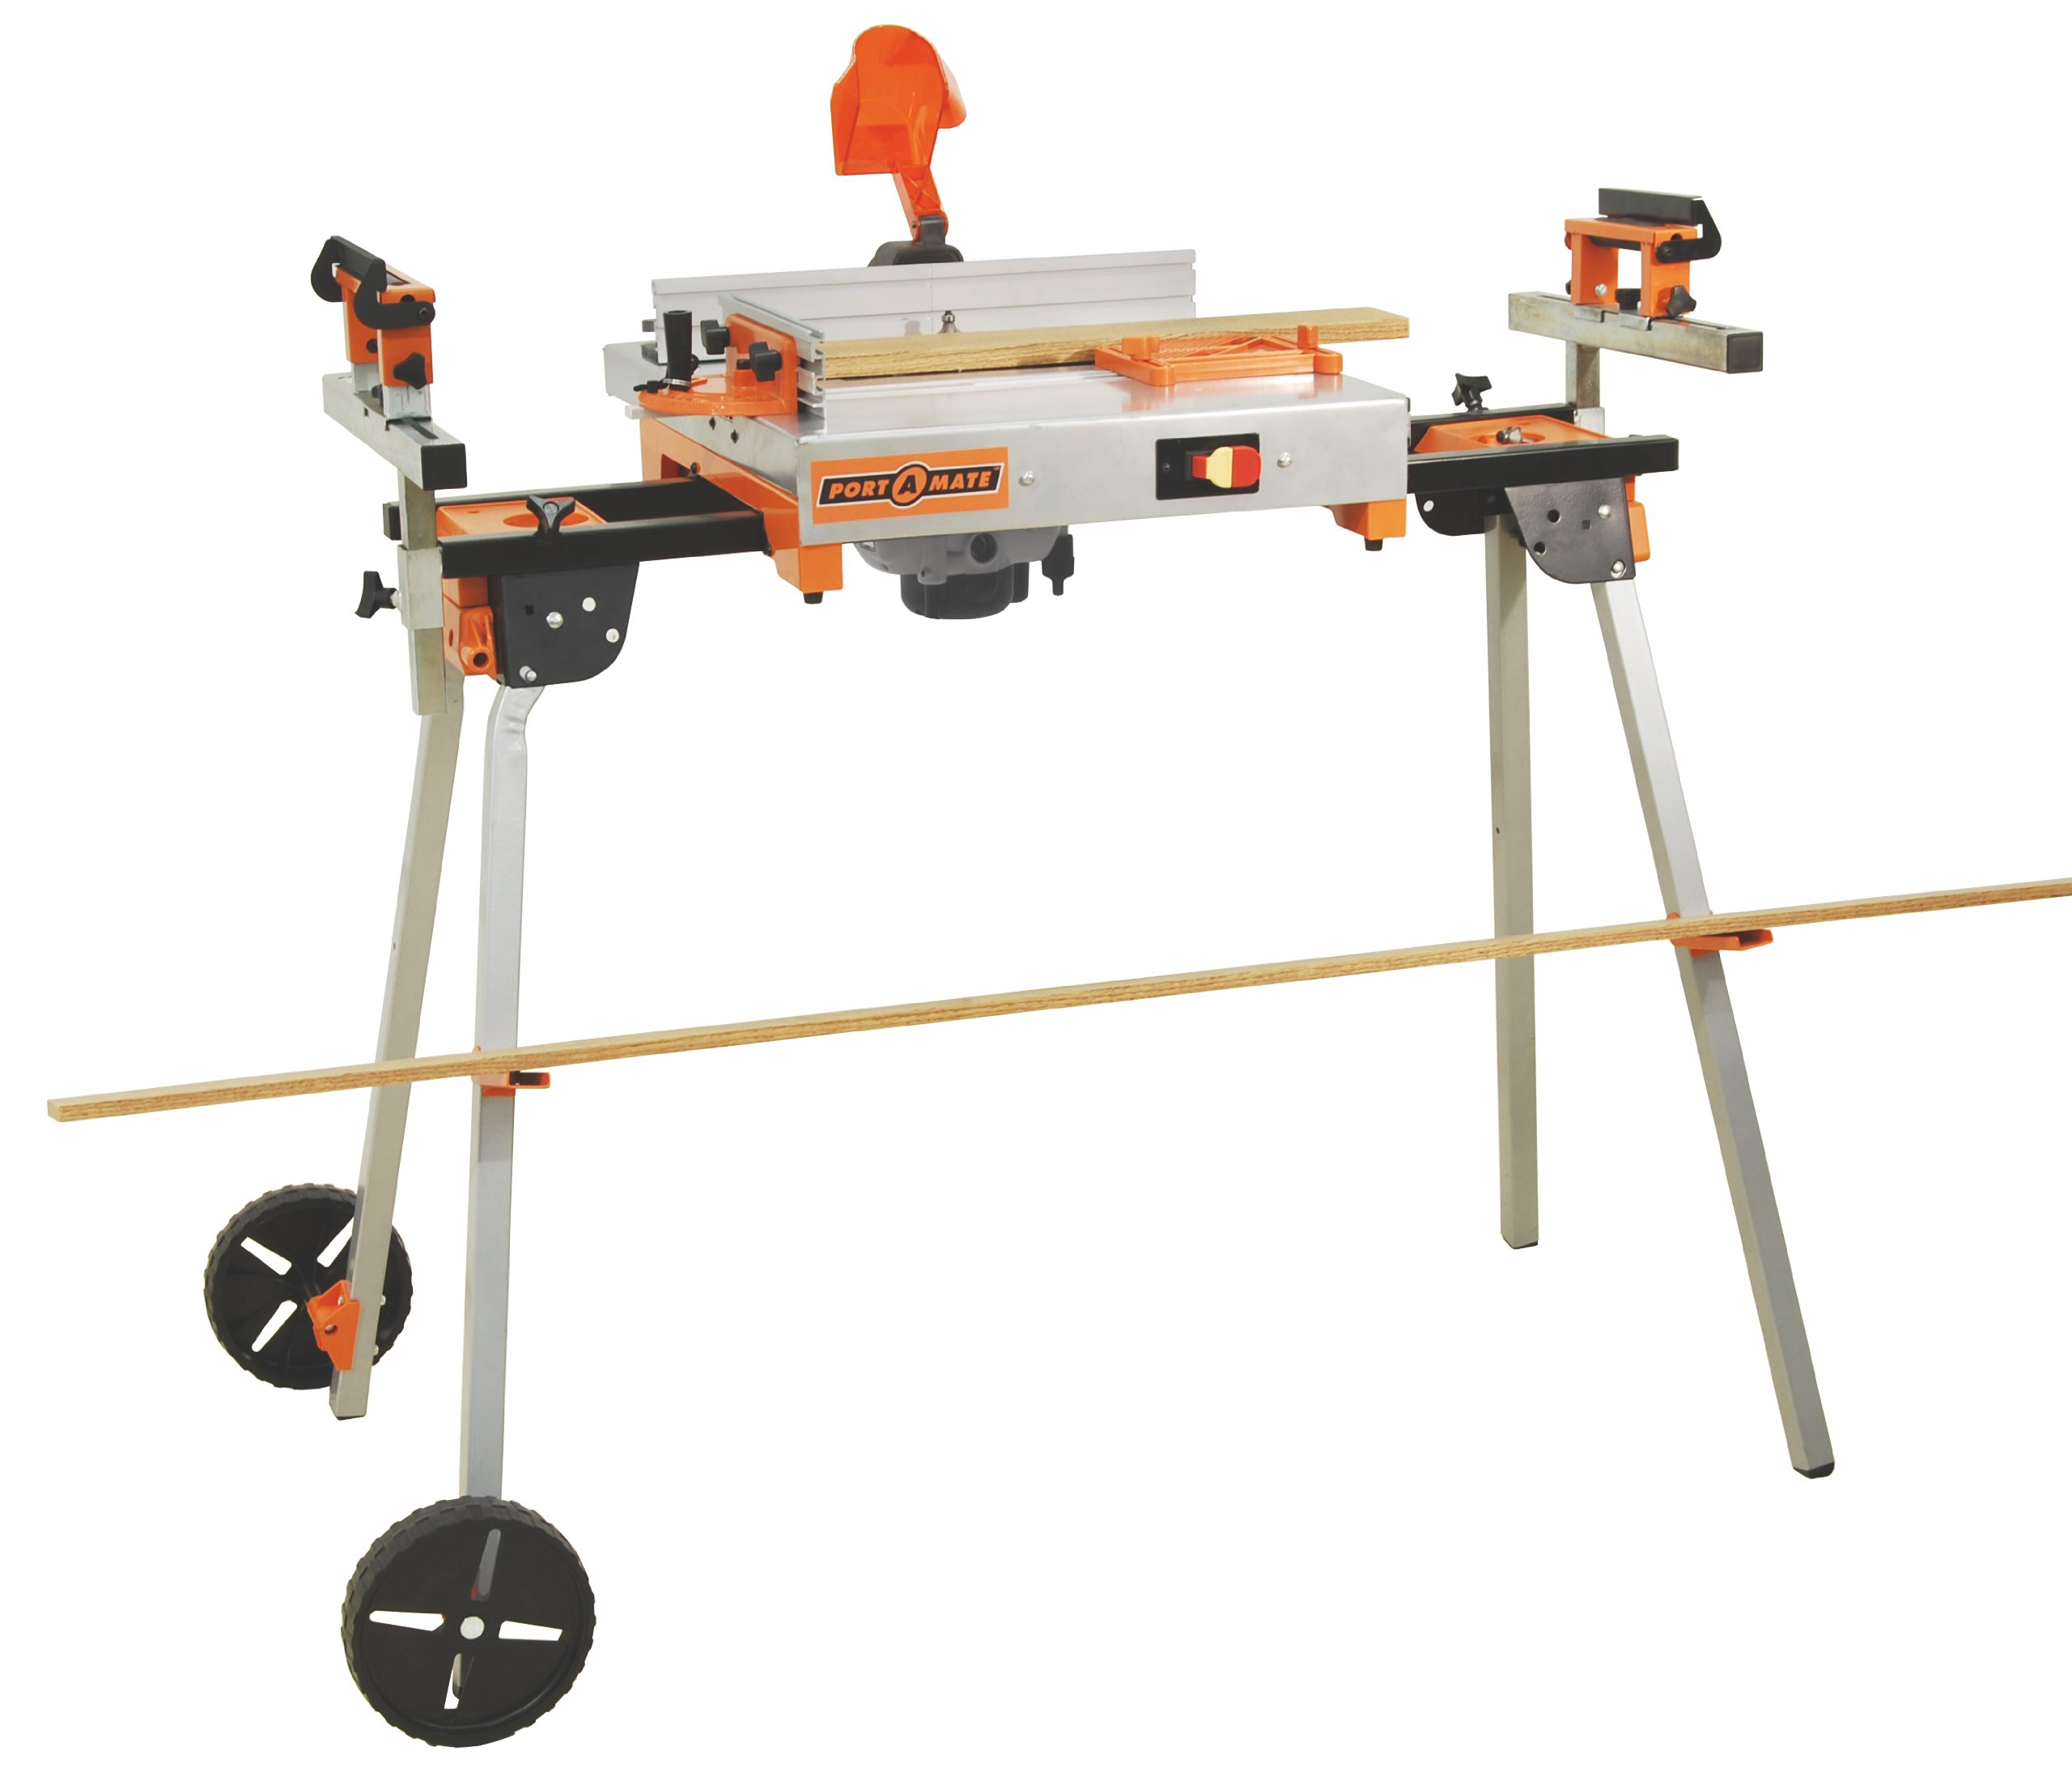 "Folding Miter Saw Stand with Wheels and 110V Outlet Portamate PM-5000 - Heavy Duty 35.5"" Work Height Miter Saw Stand with 8"" Wheels, Powered Outlet and 500 lb. Capacity"